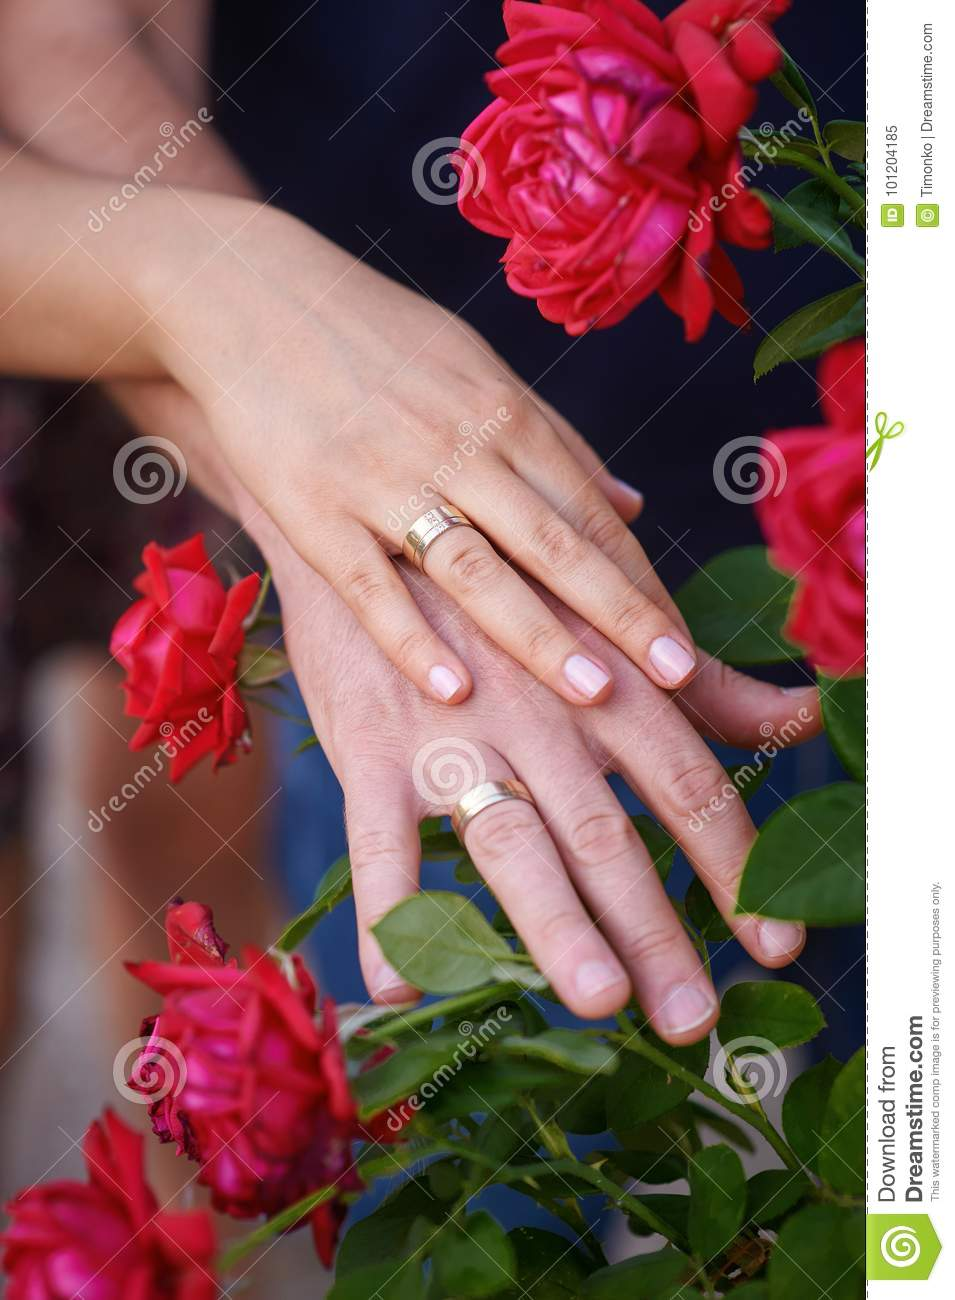 Hands Together With Wedding Rings On Red Roses Stock Image - Image ...